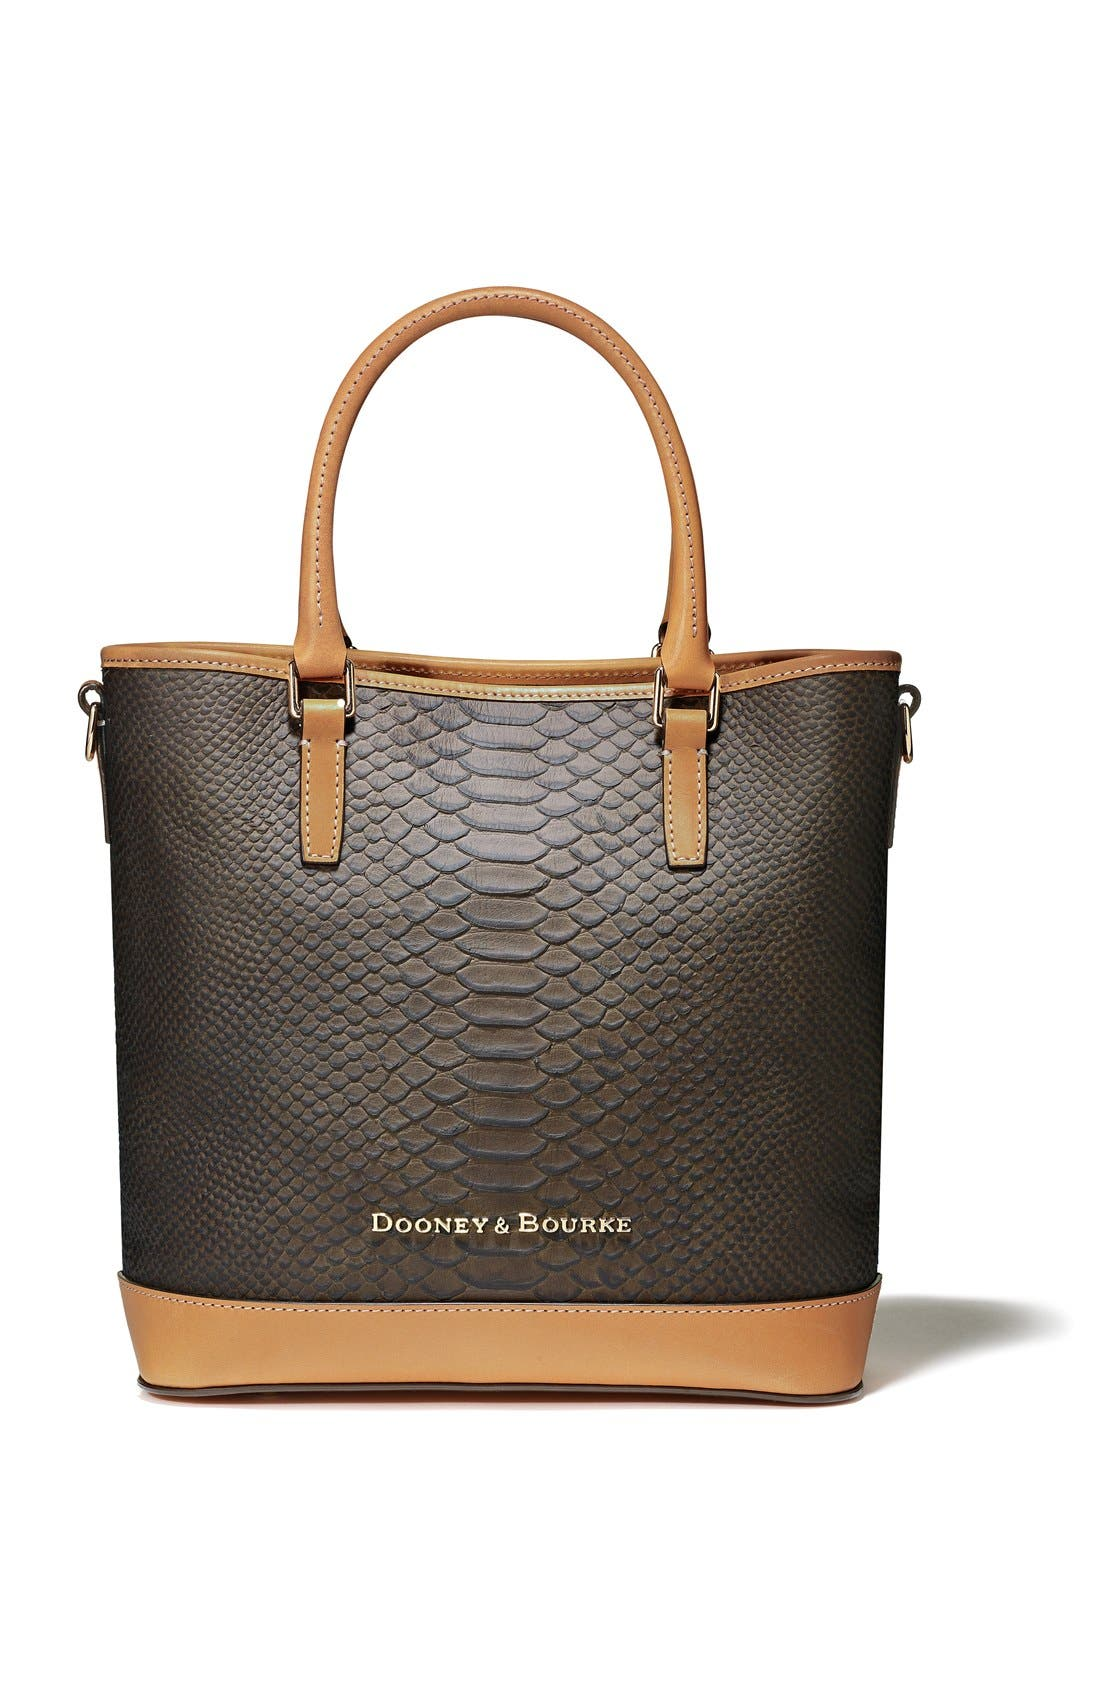 DOONEY & BOURKE, 'Cara' Snake Embossed Leather Satchel, Alternate thumbnail 3, color, 001